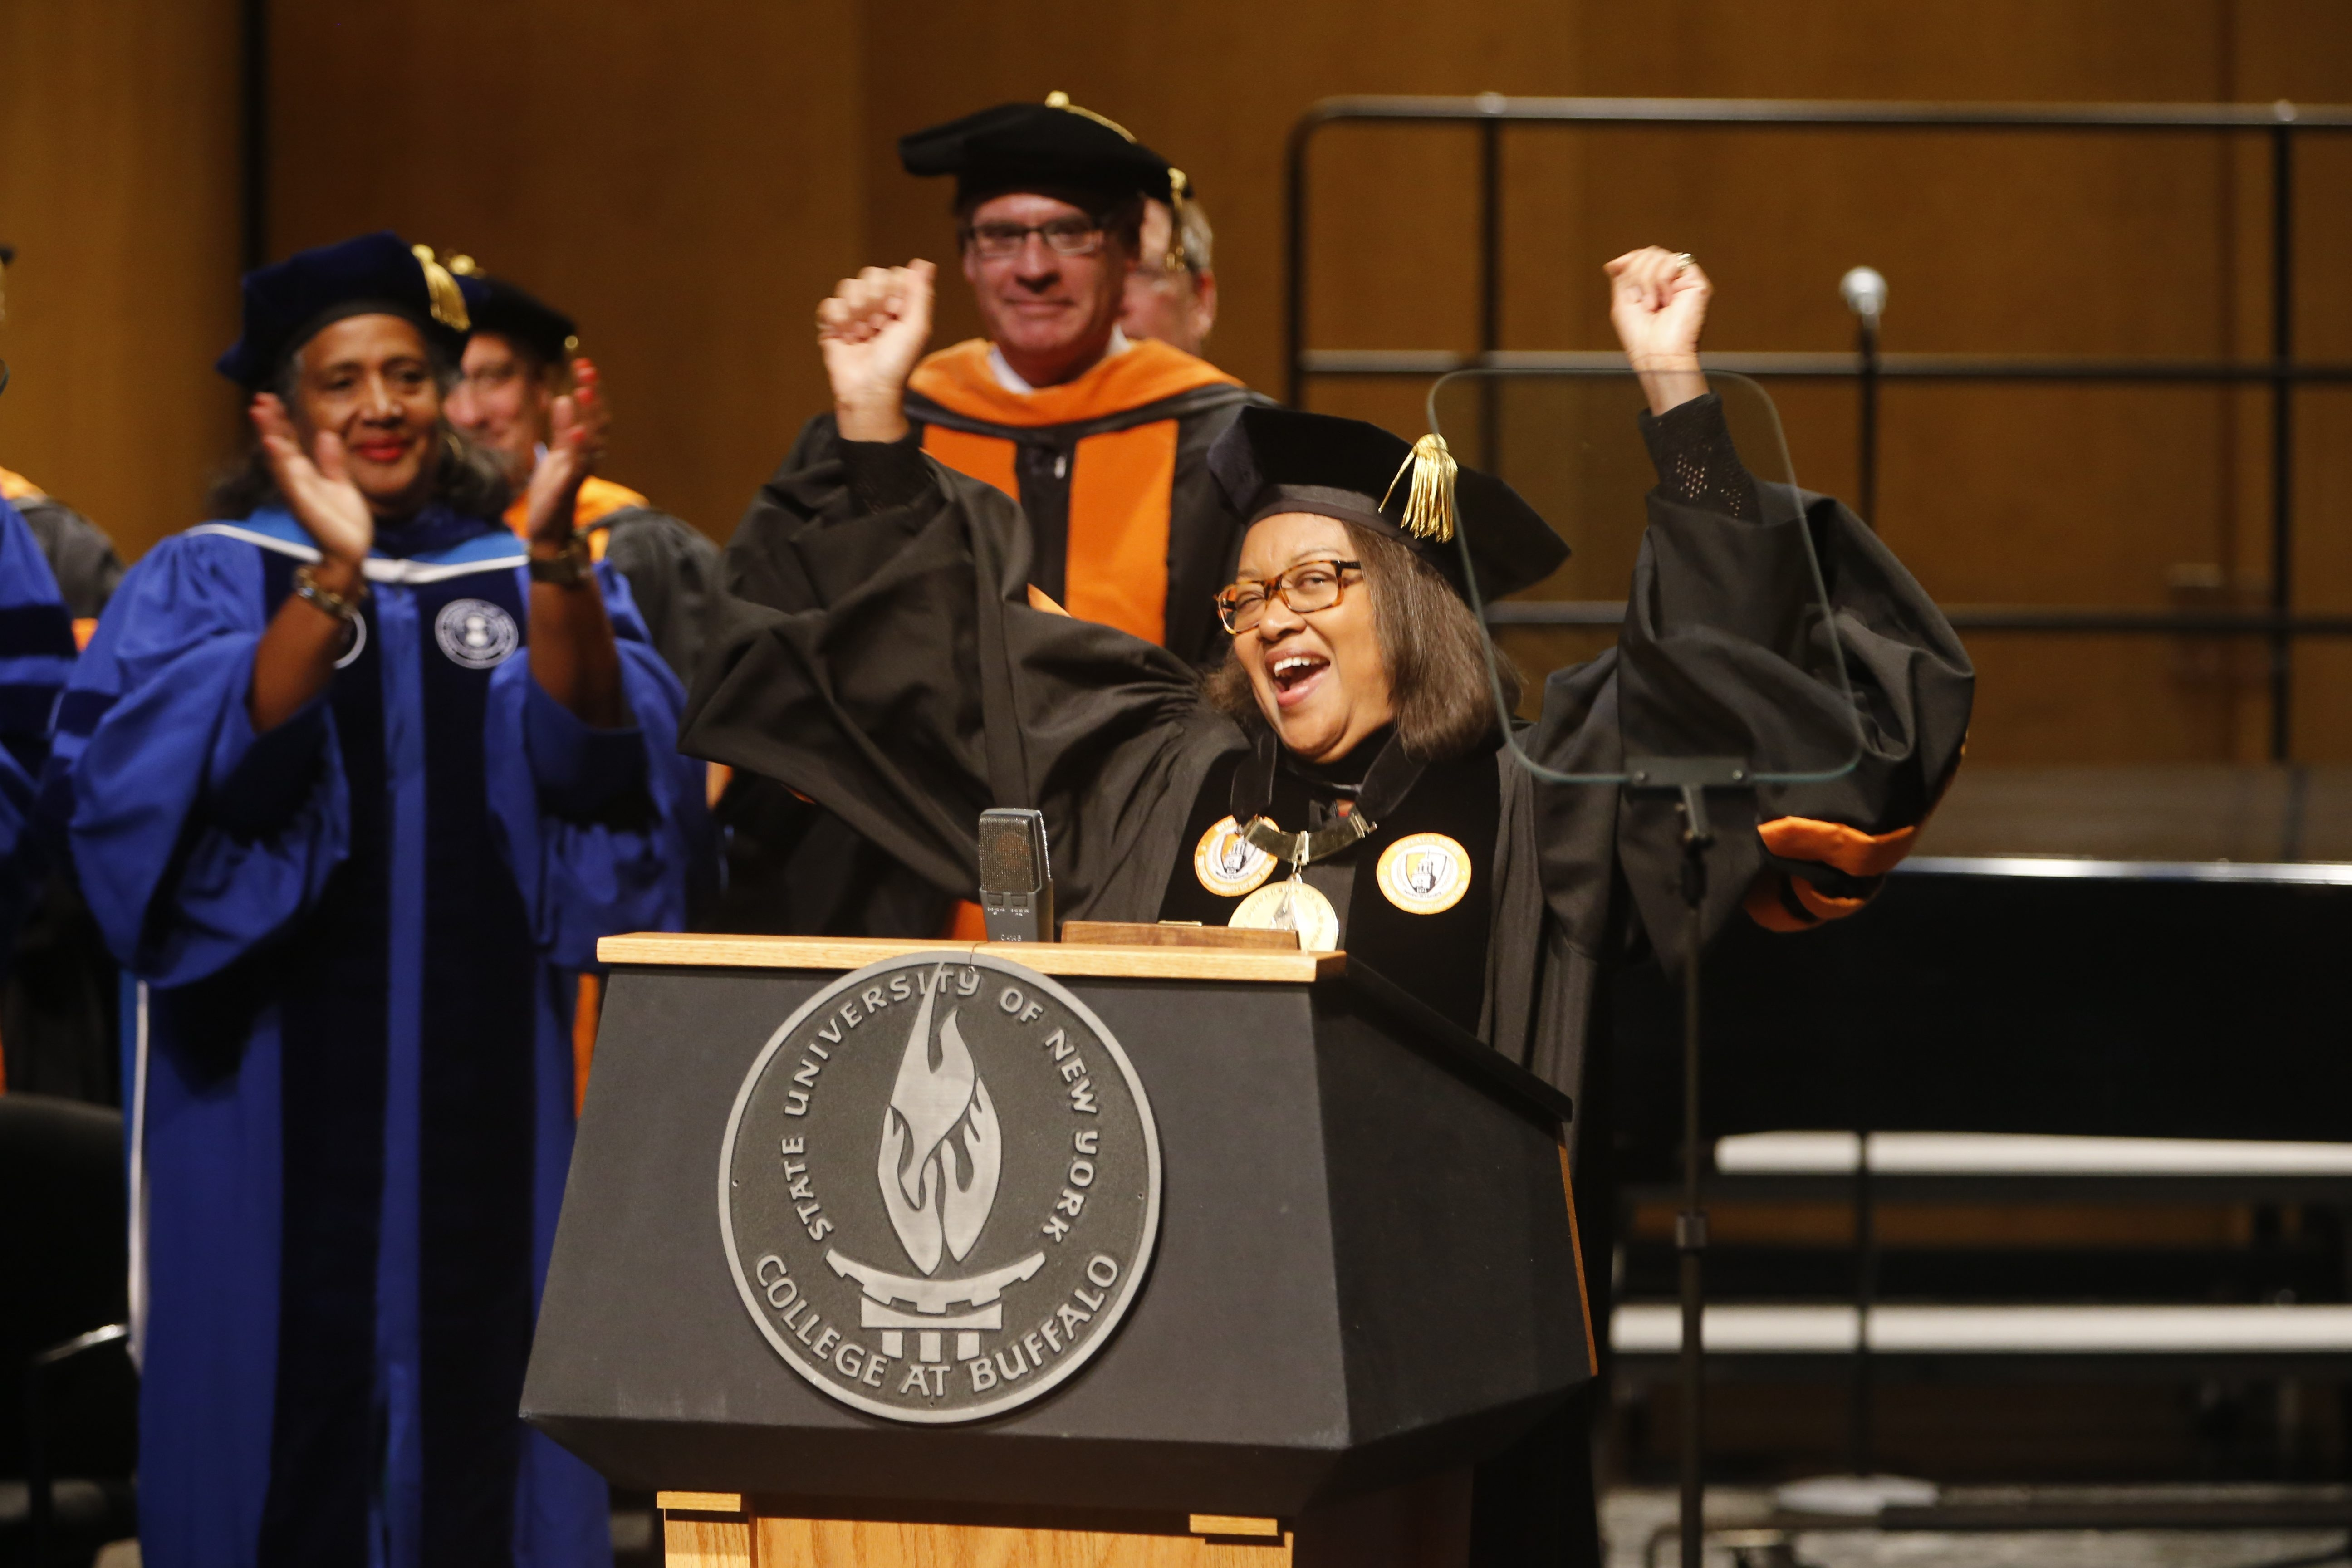 Katherine S. Conway-Turner celebrates after being inaugurated as president of SUNY Buffalo State. See photo gallery on BuffaloNews.com.